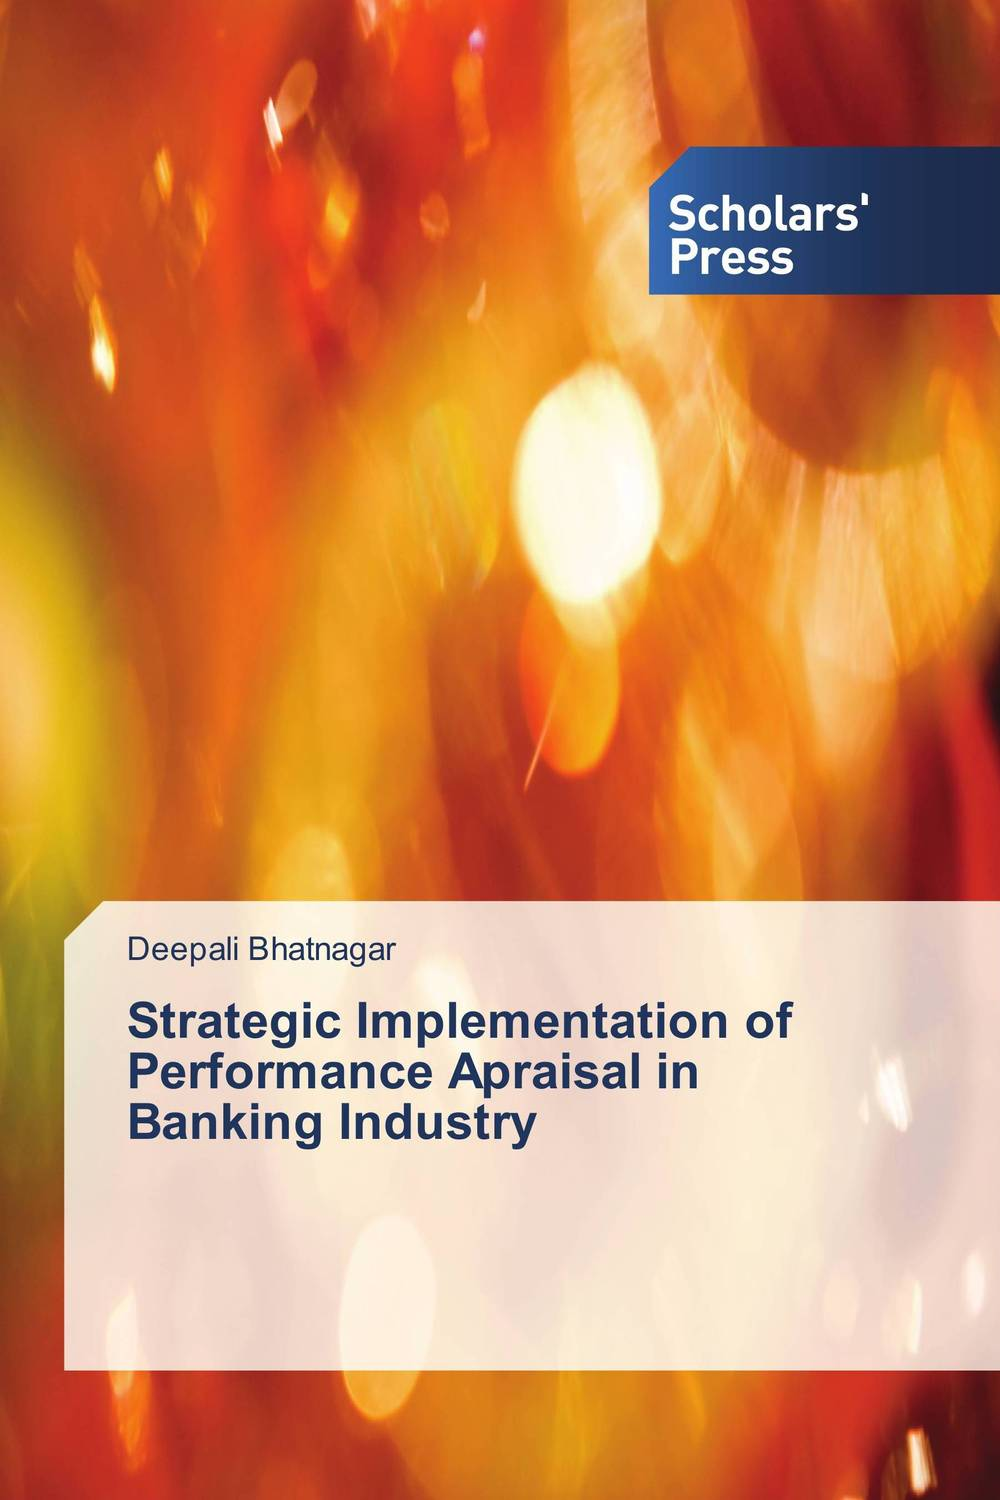 Strategic Implementation of Performance Apraisal in Banking Industry customer experience as a strategic differentiator